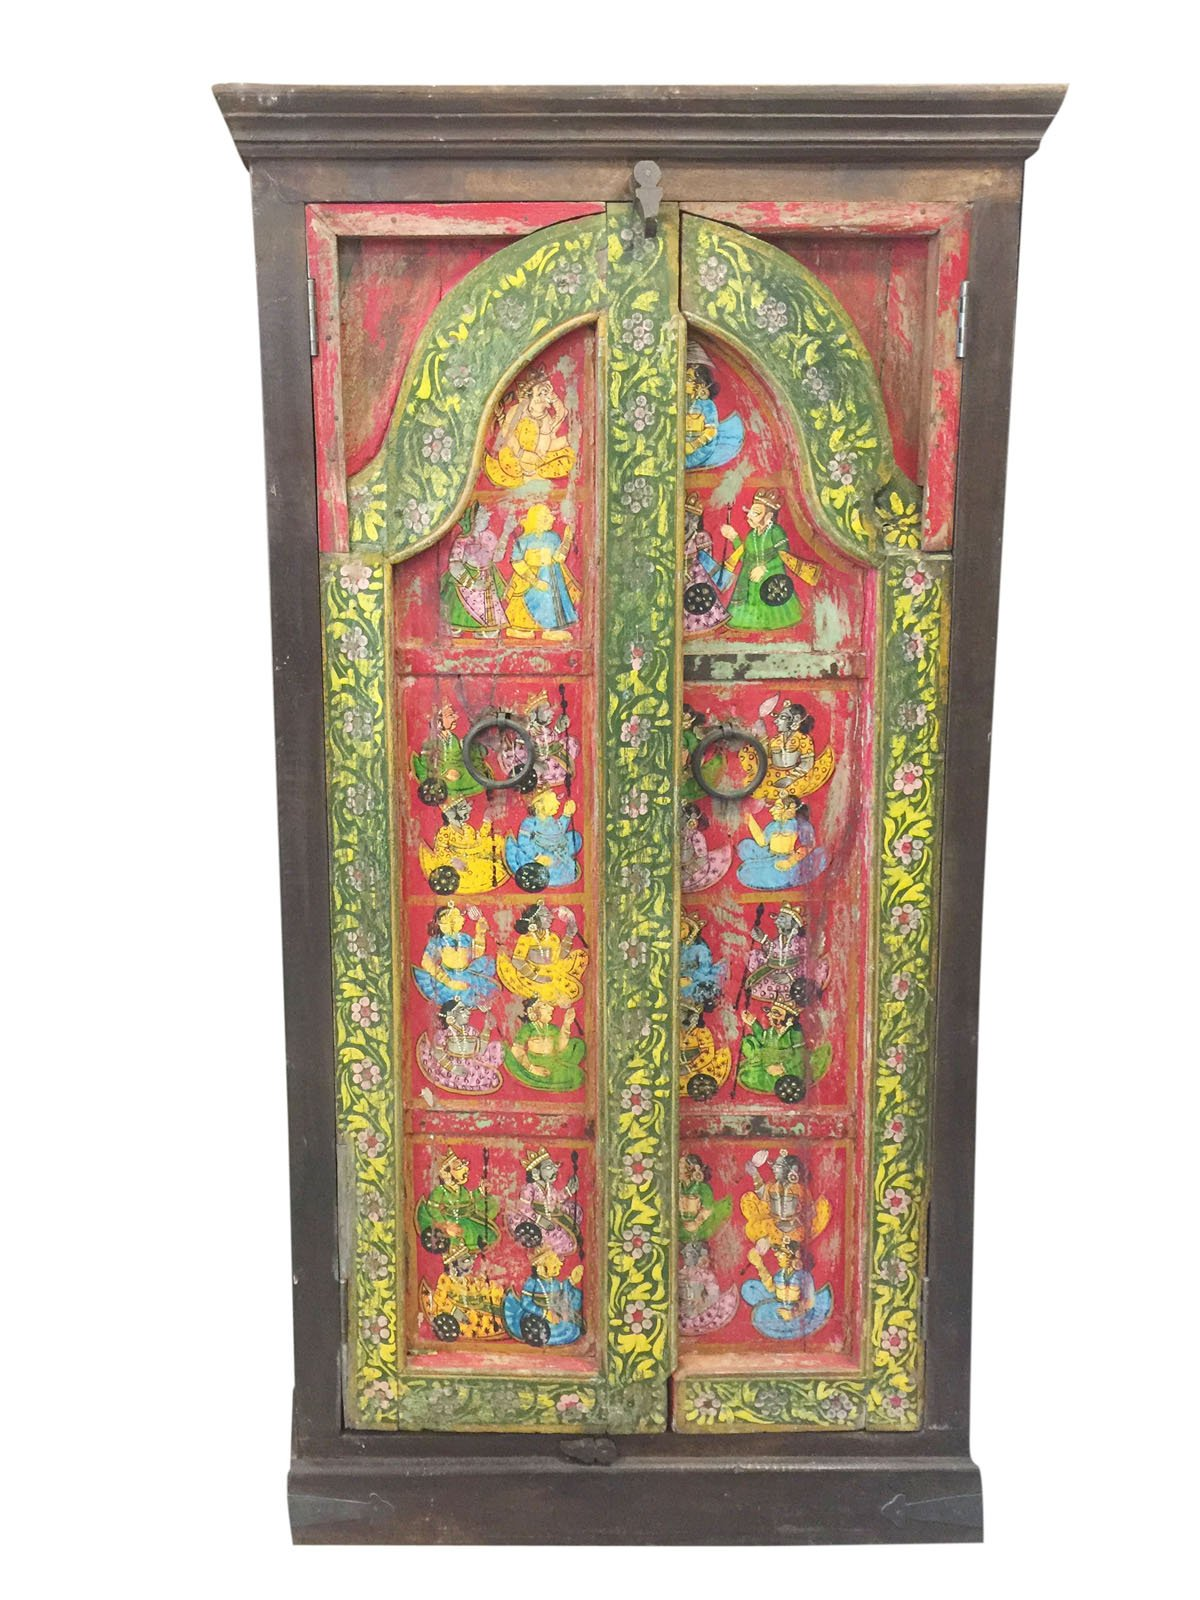 Antique Wardrobe Hand Painted Haveli Armoire Cabinet Shabby chic Interiors Design